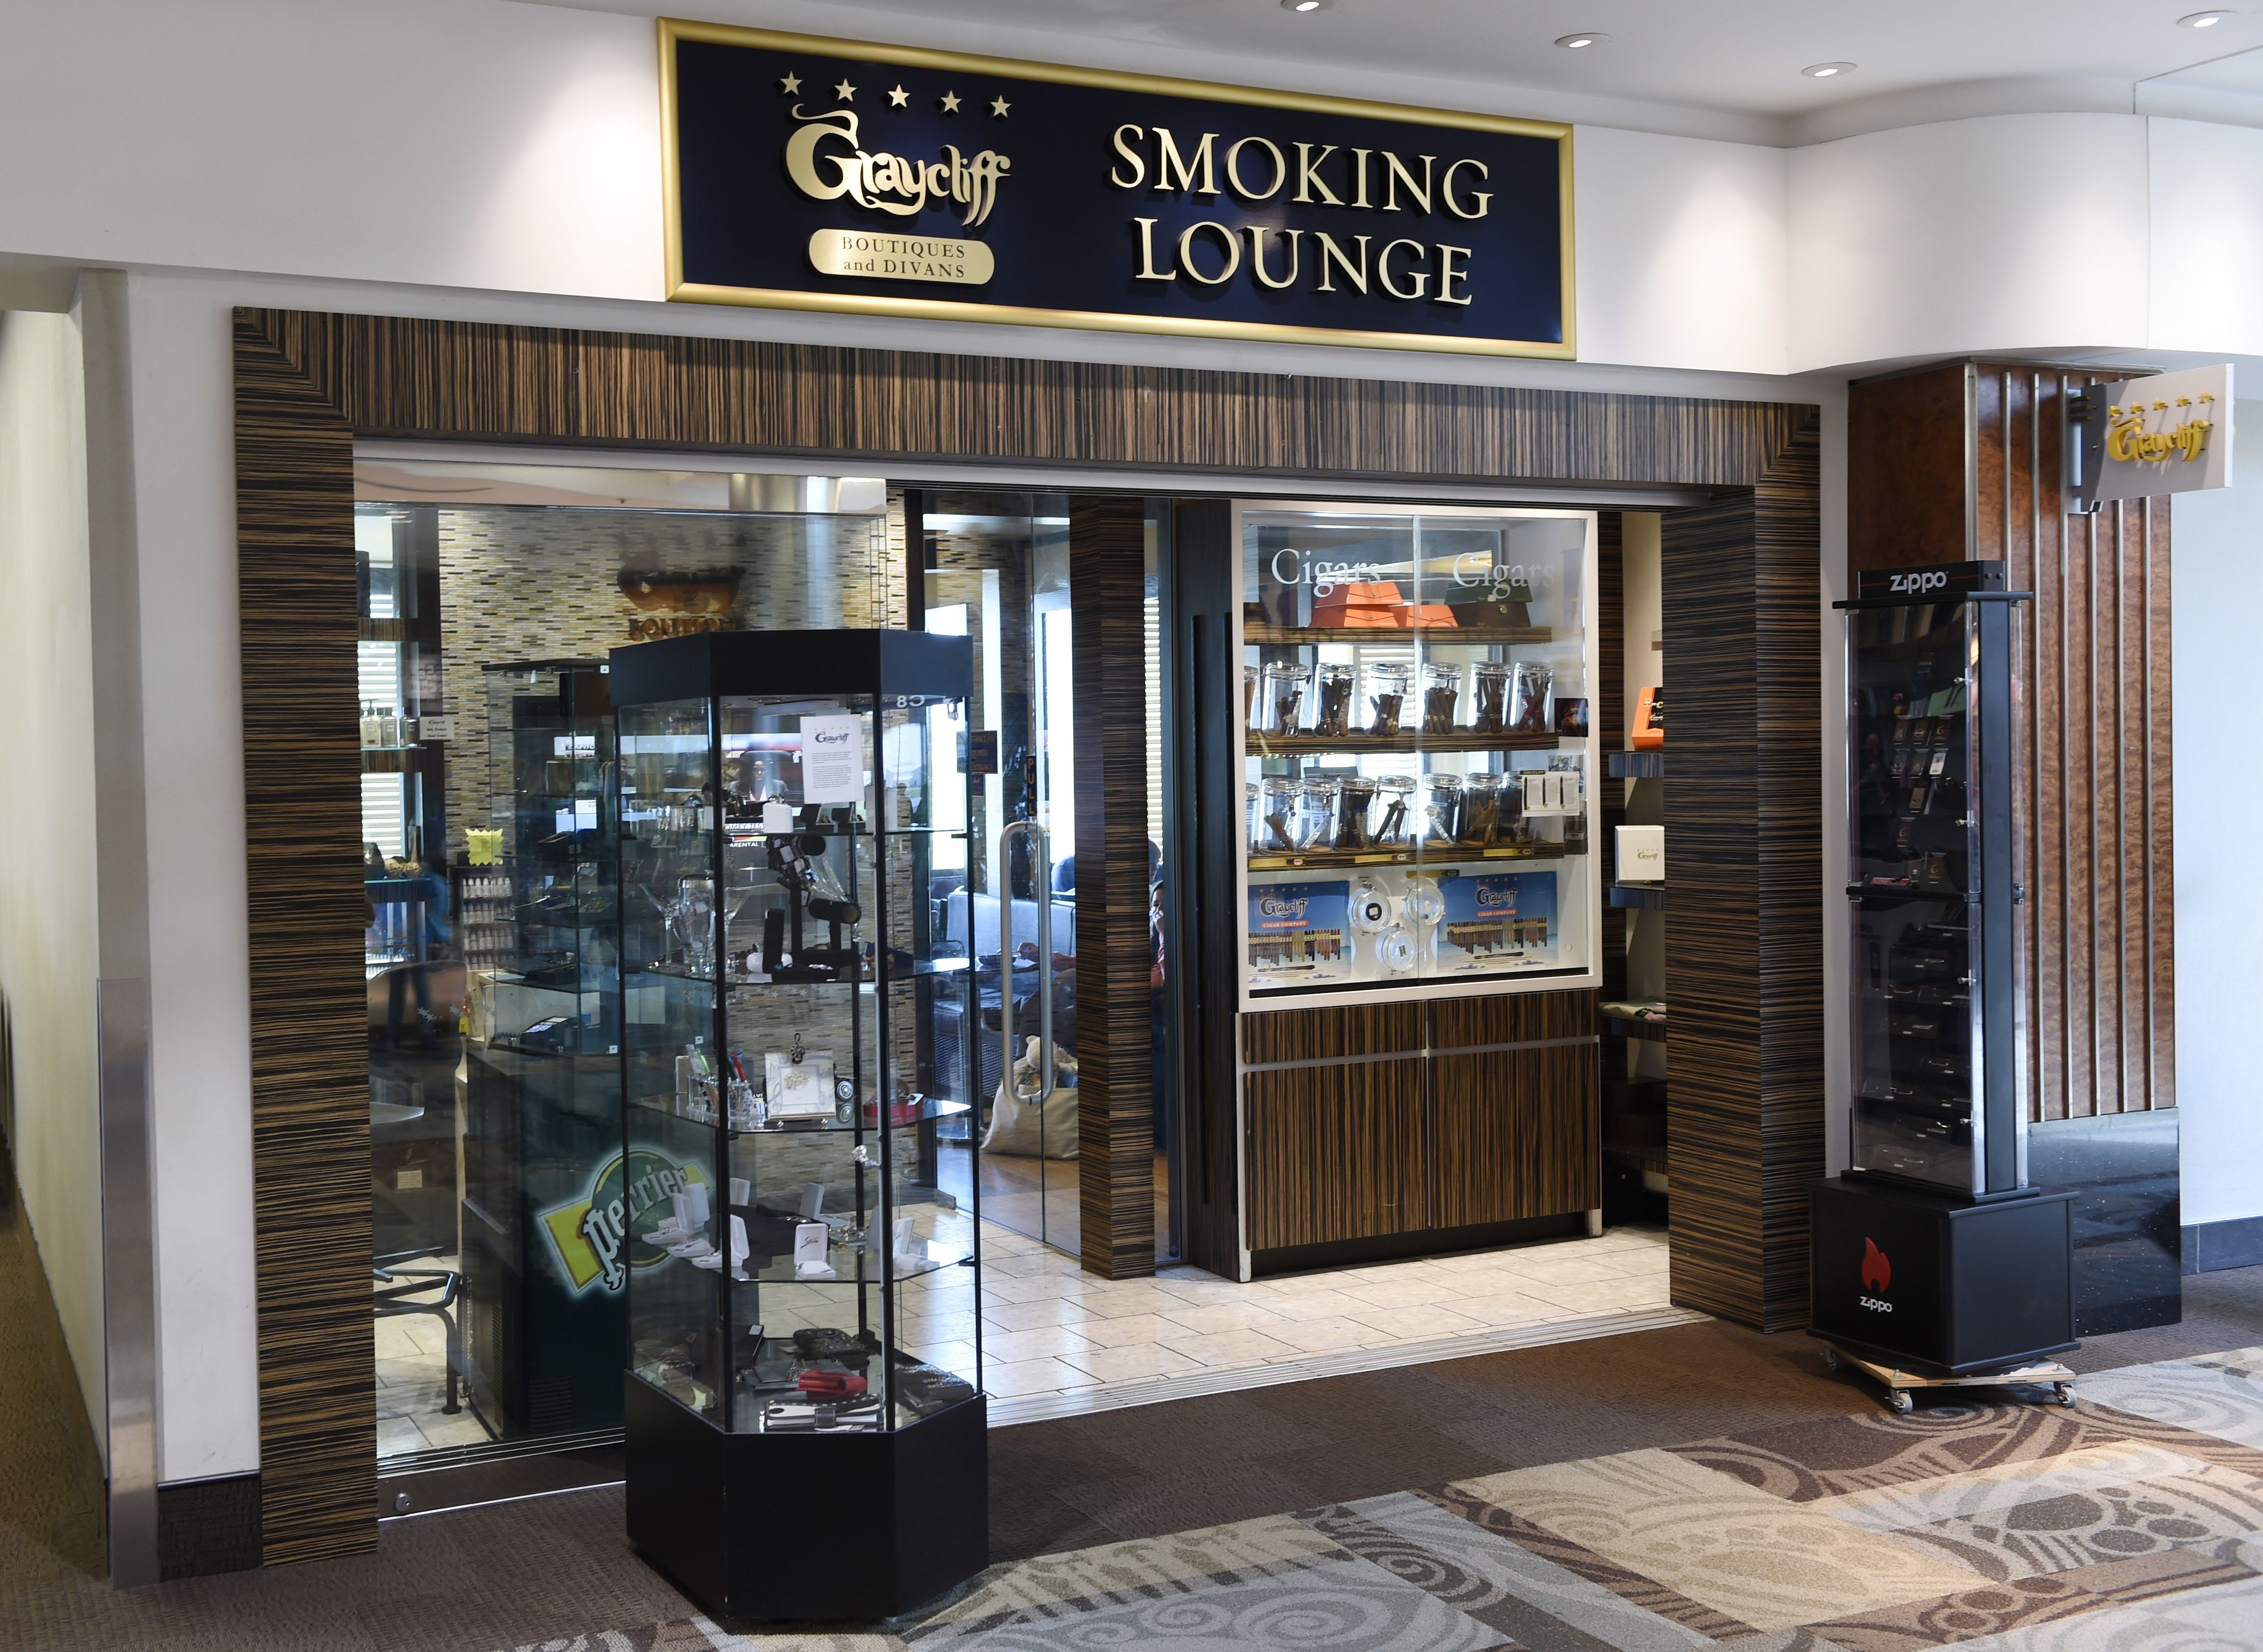 Atlanta's airport to ban smoking as places to light up get harder to find